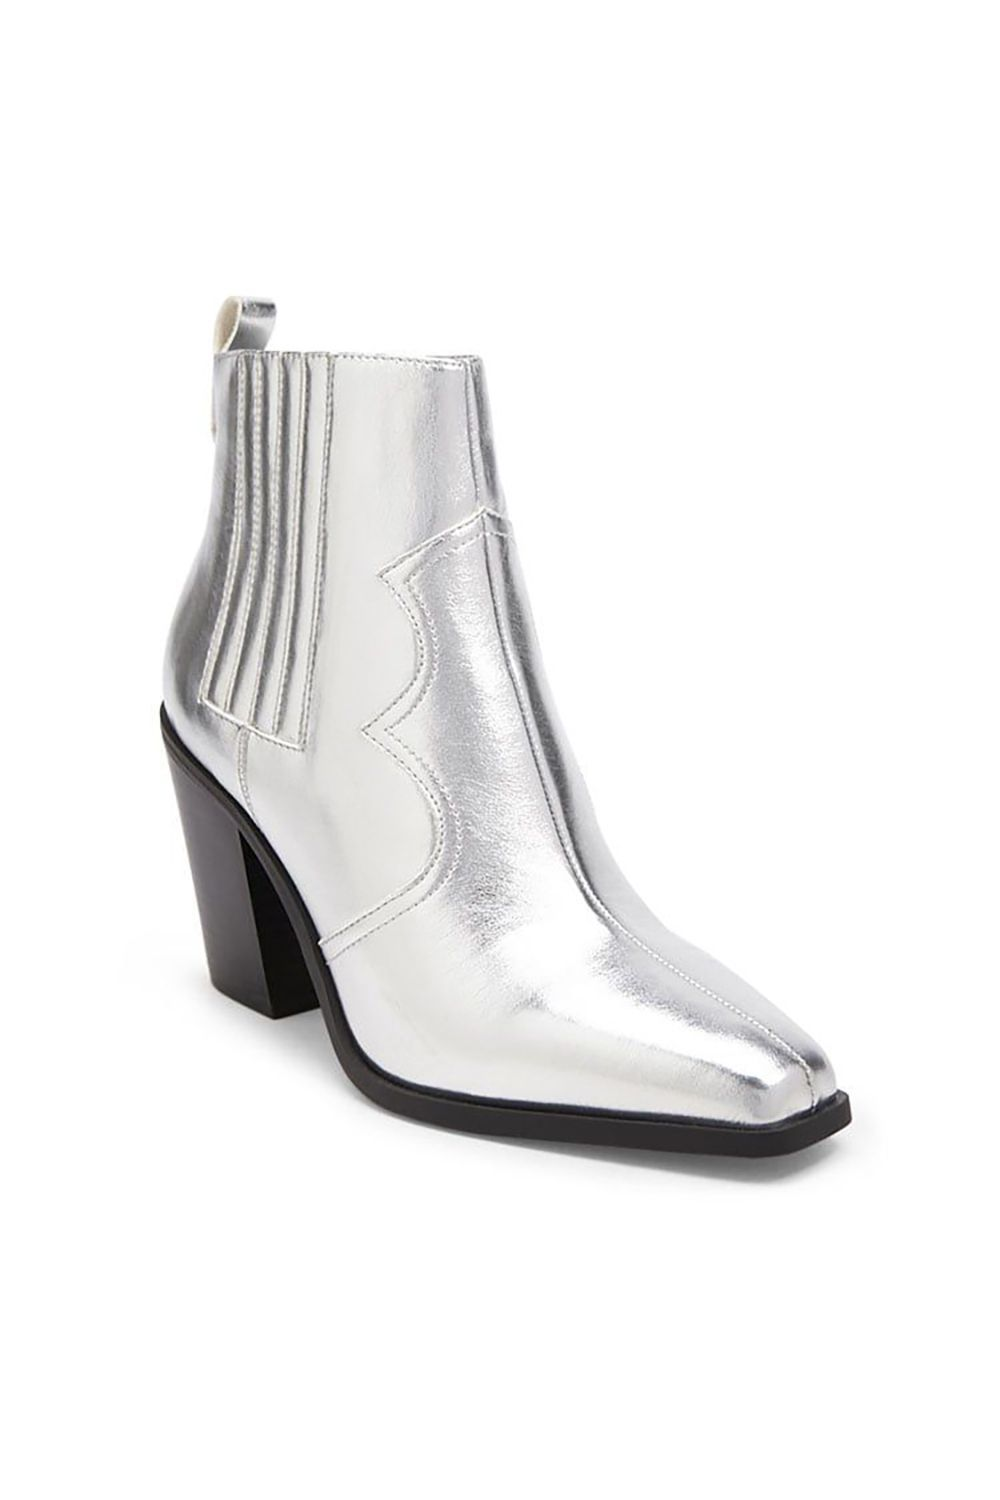 Metallic Western Booties Forever21 forever21.com $34.90 SHOP IT Few things compare to the fashion high of finding a pair of shoes that look five times more expensive than they actually are. Here, a pair of metallic, square-toed western booties for when your outfits need a sleek, futuristic edge.